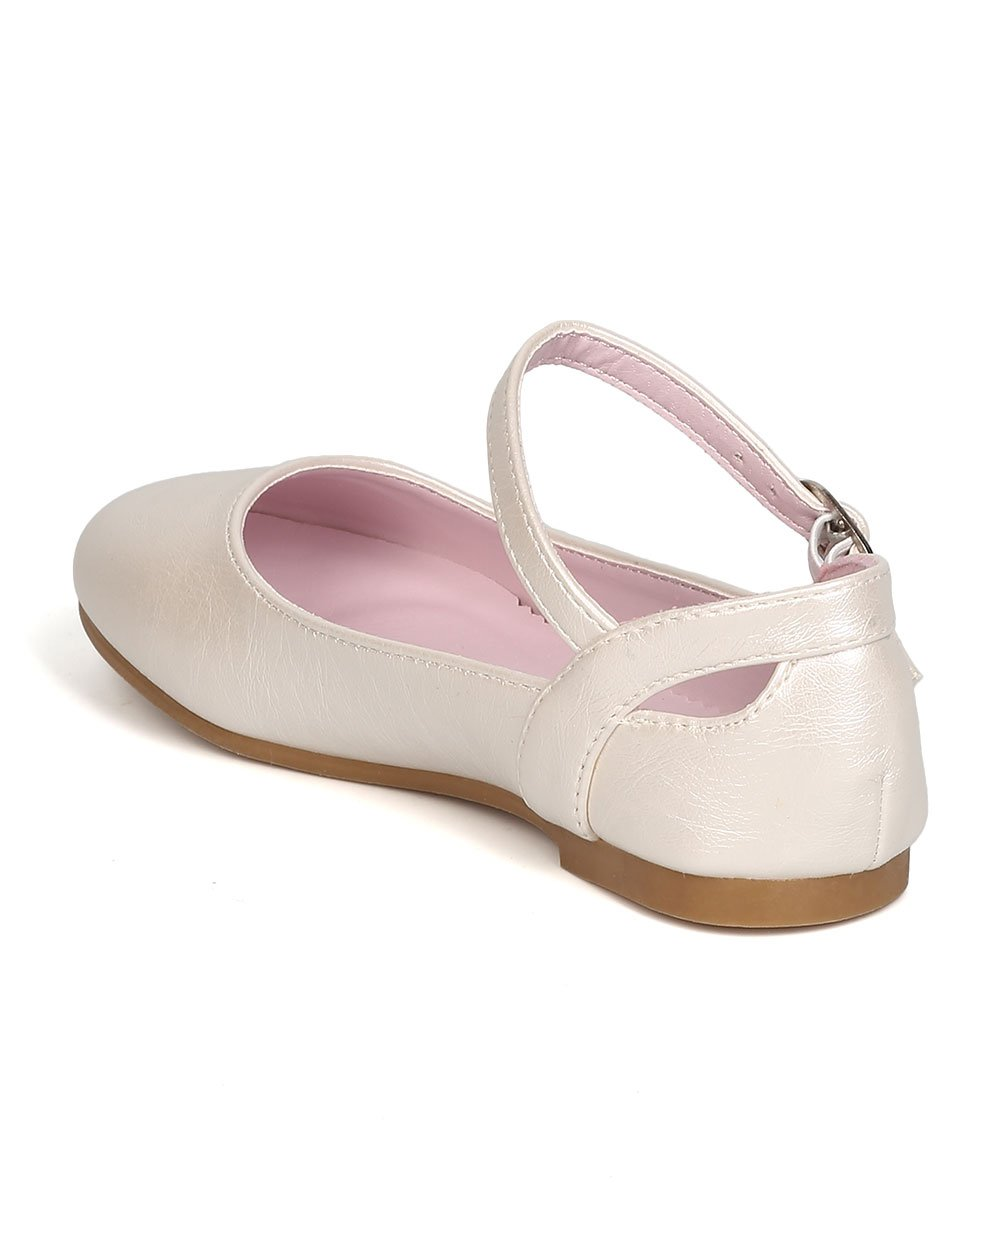 Girls Leatherette Ankle Strap Cut Out Ballet Flat GB42 - Ivory (Size: Little Kid 1) by Little Angel (Image #3)